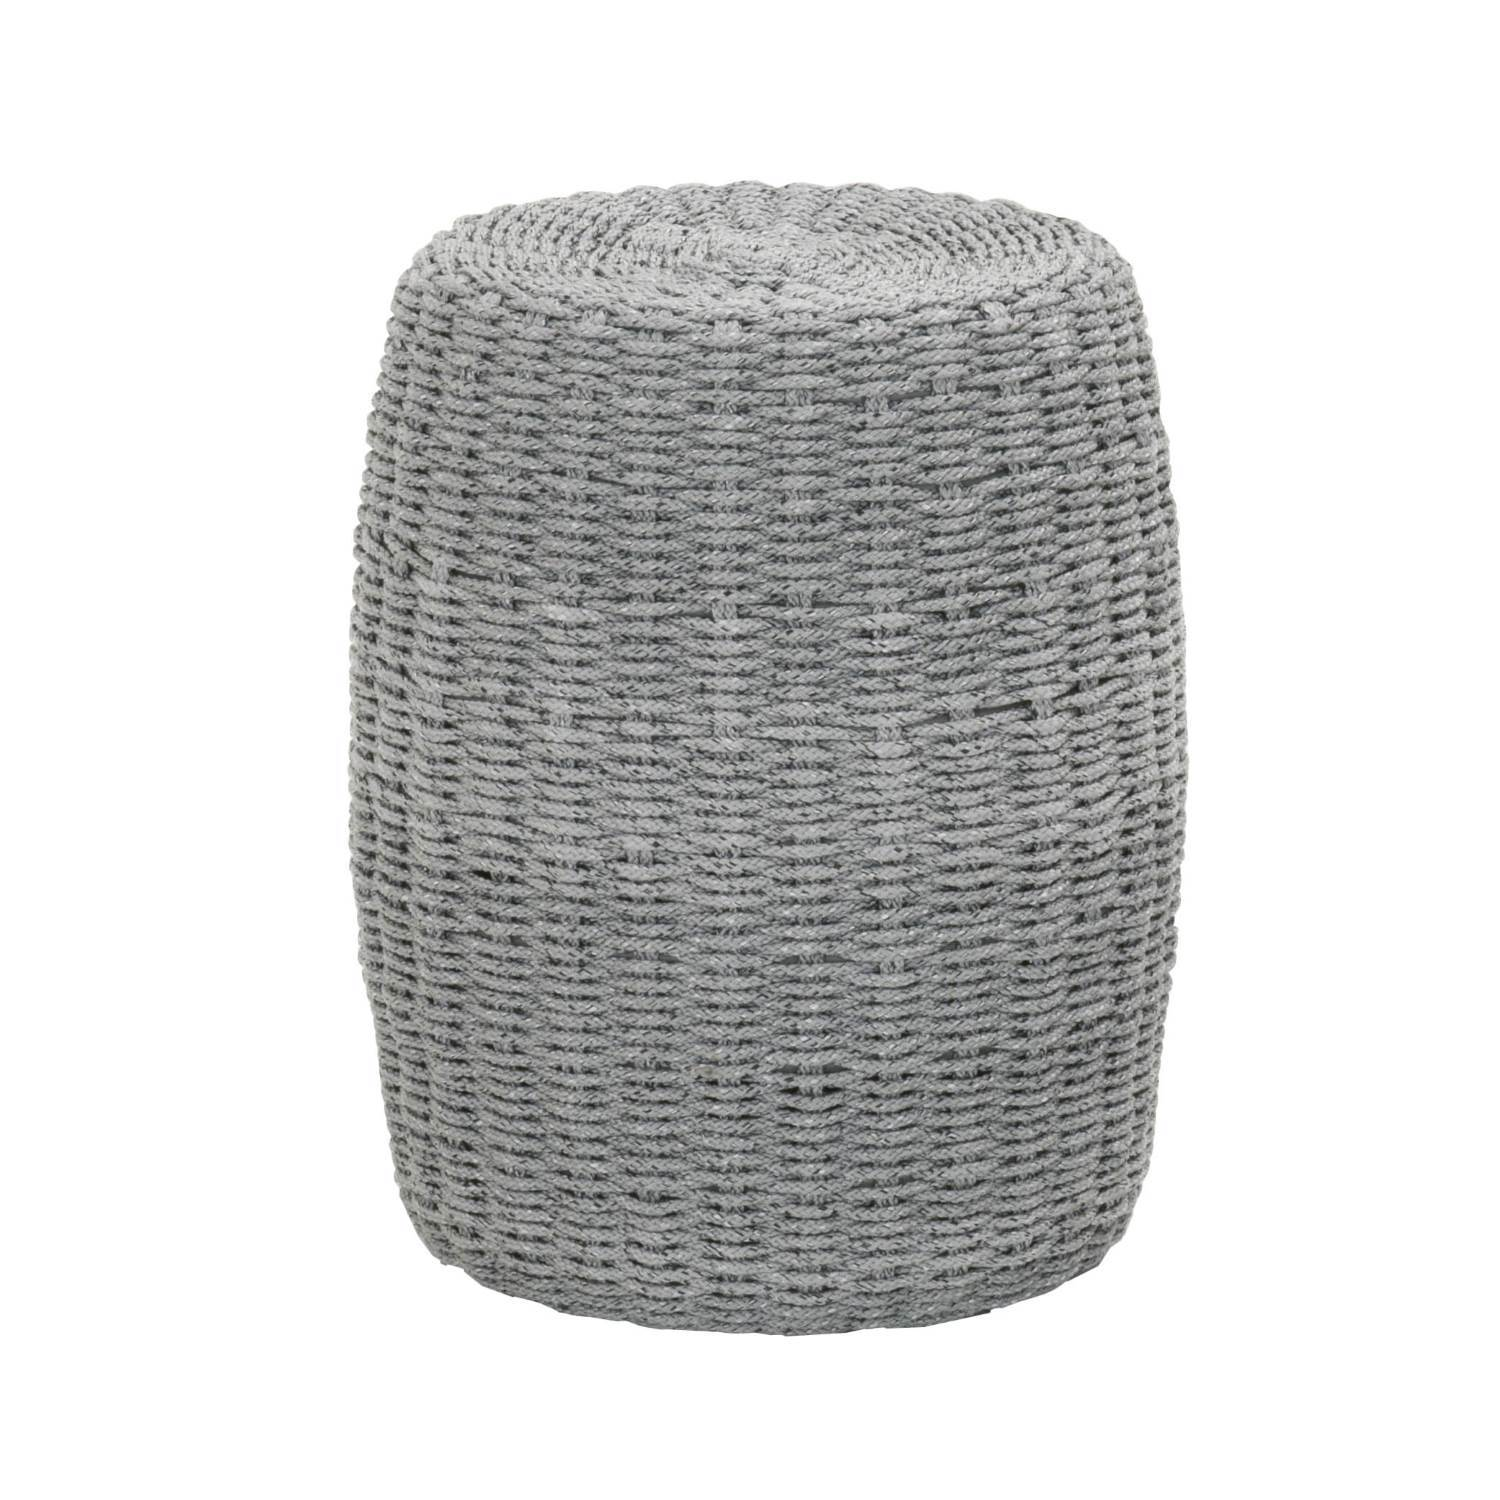 Loom Accent Table in Platinum Rope